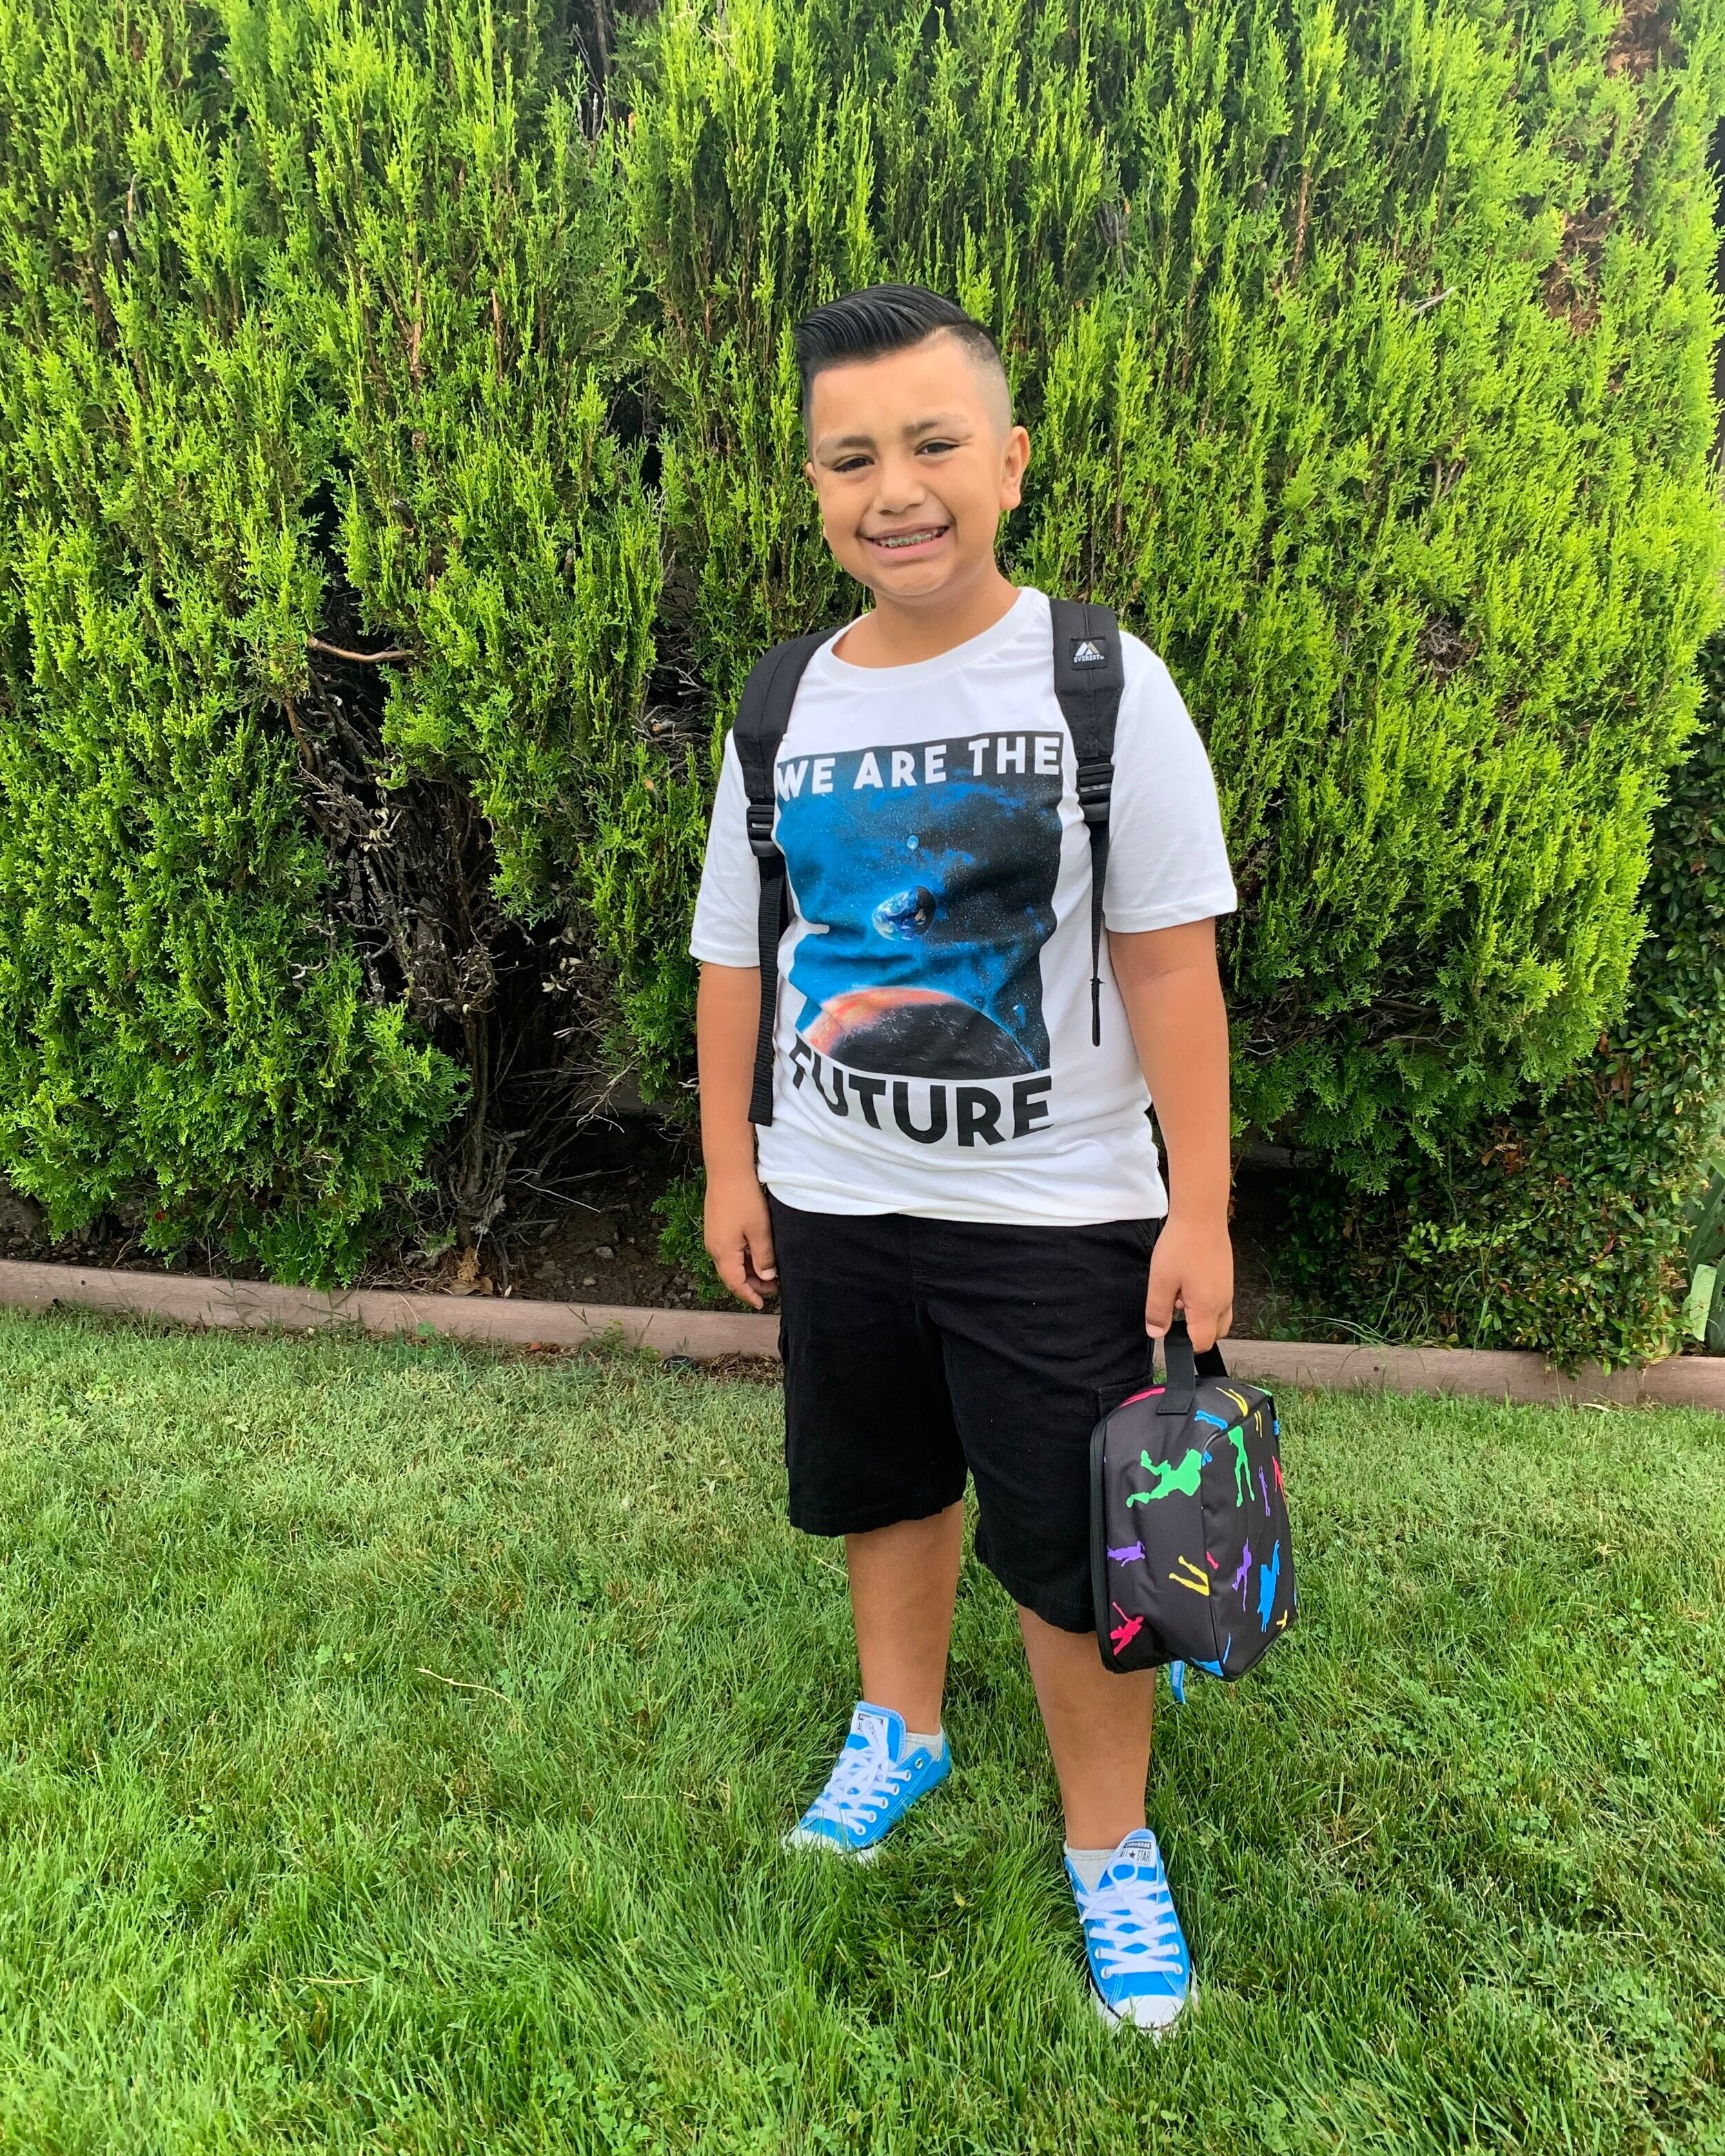 JESSE MARQUEZ-BARRIOS - MAGIC Buddy Since: 2019Age: 10 years oldFavorite song: Young & Wild by The StrumbellasHobbies: Hockey, Coding and MathWhen I Grow Up: I want to be an Architect